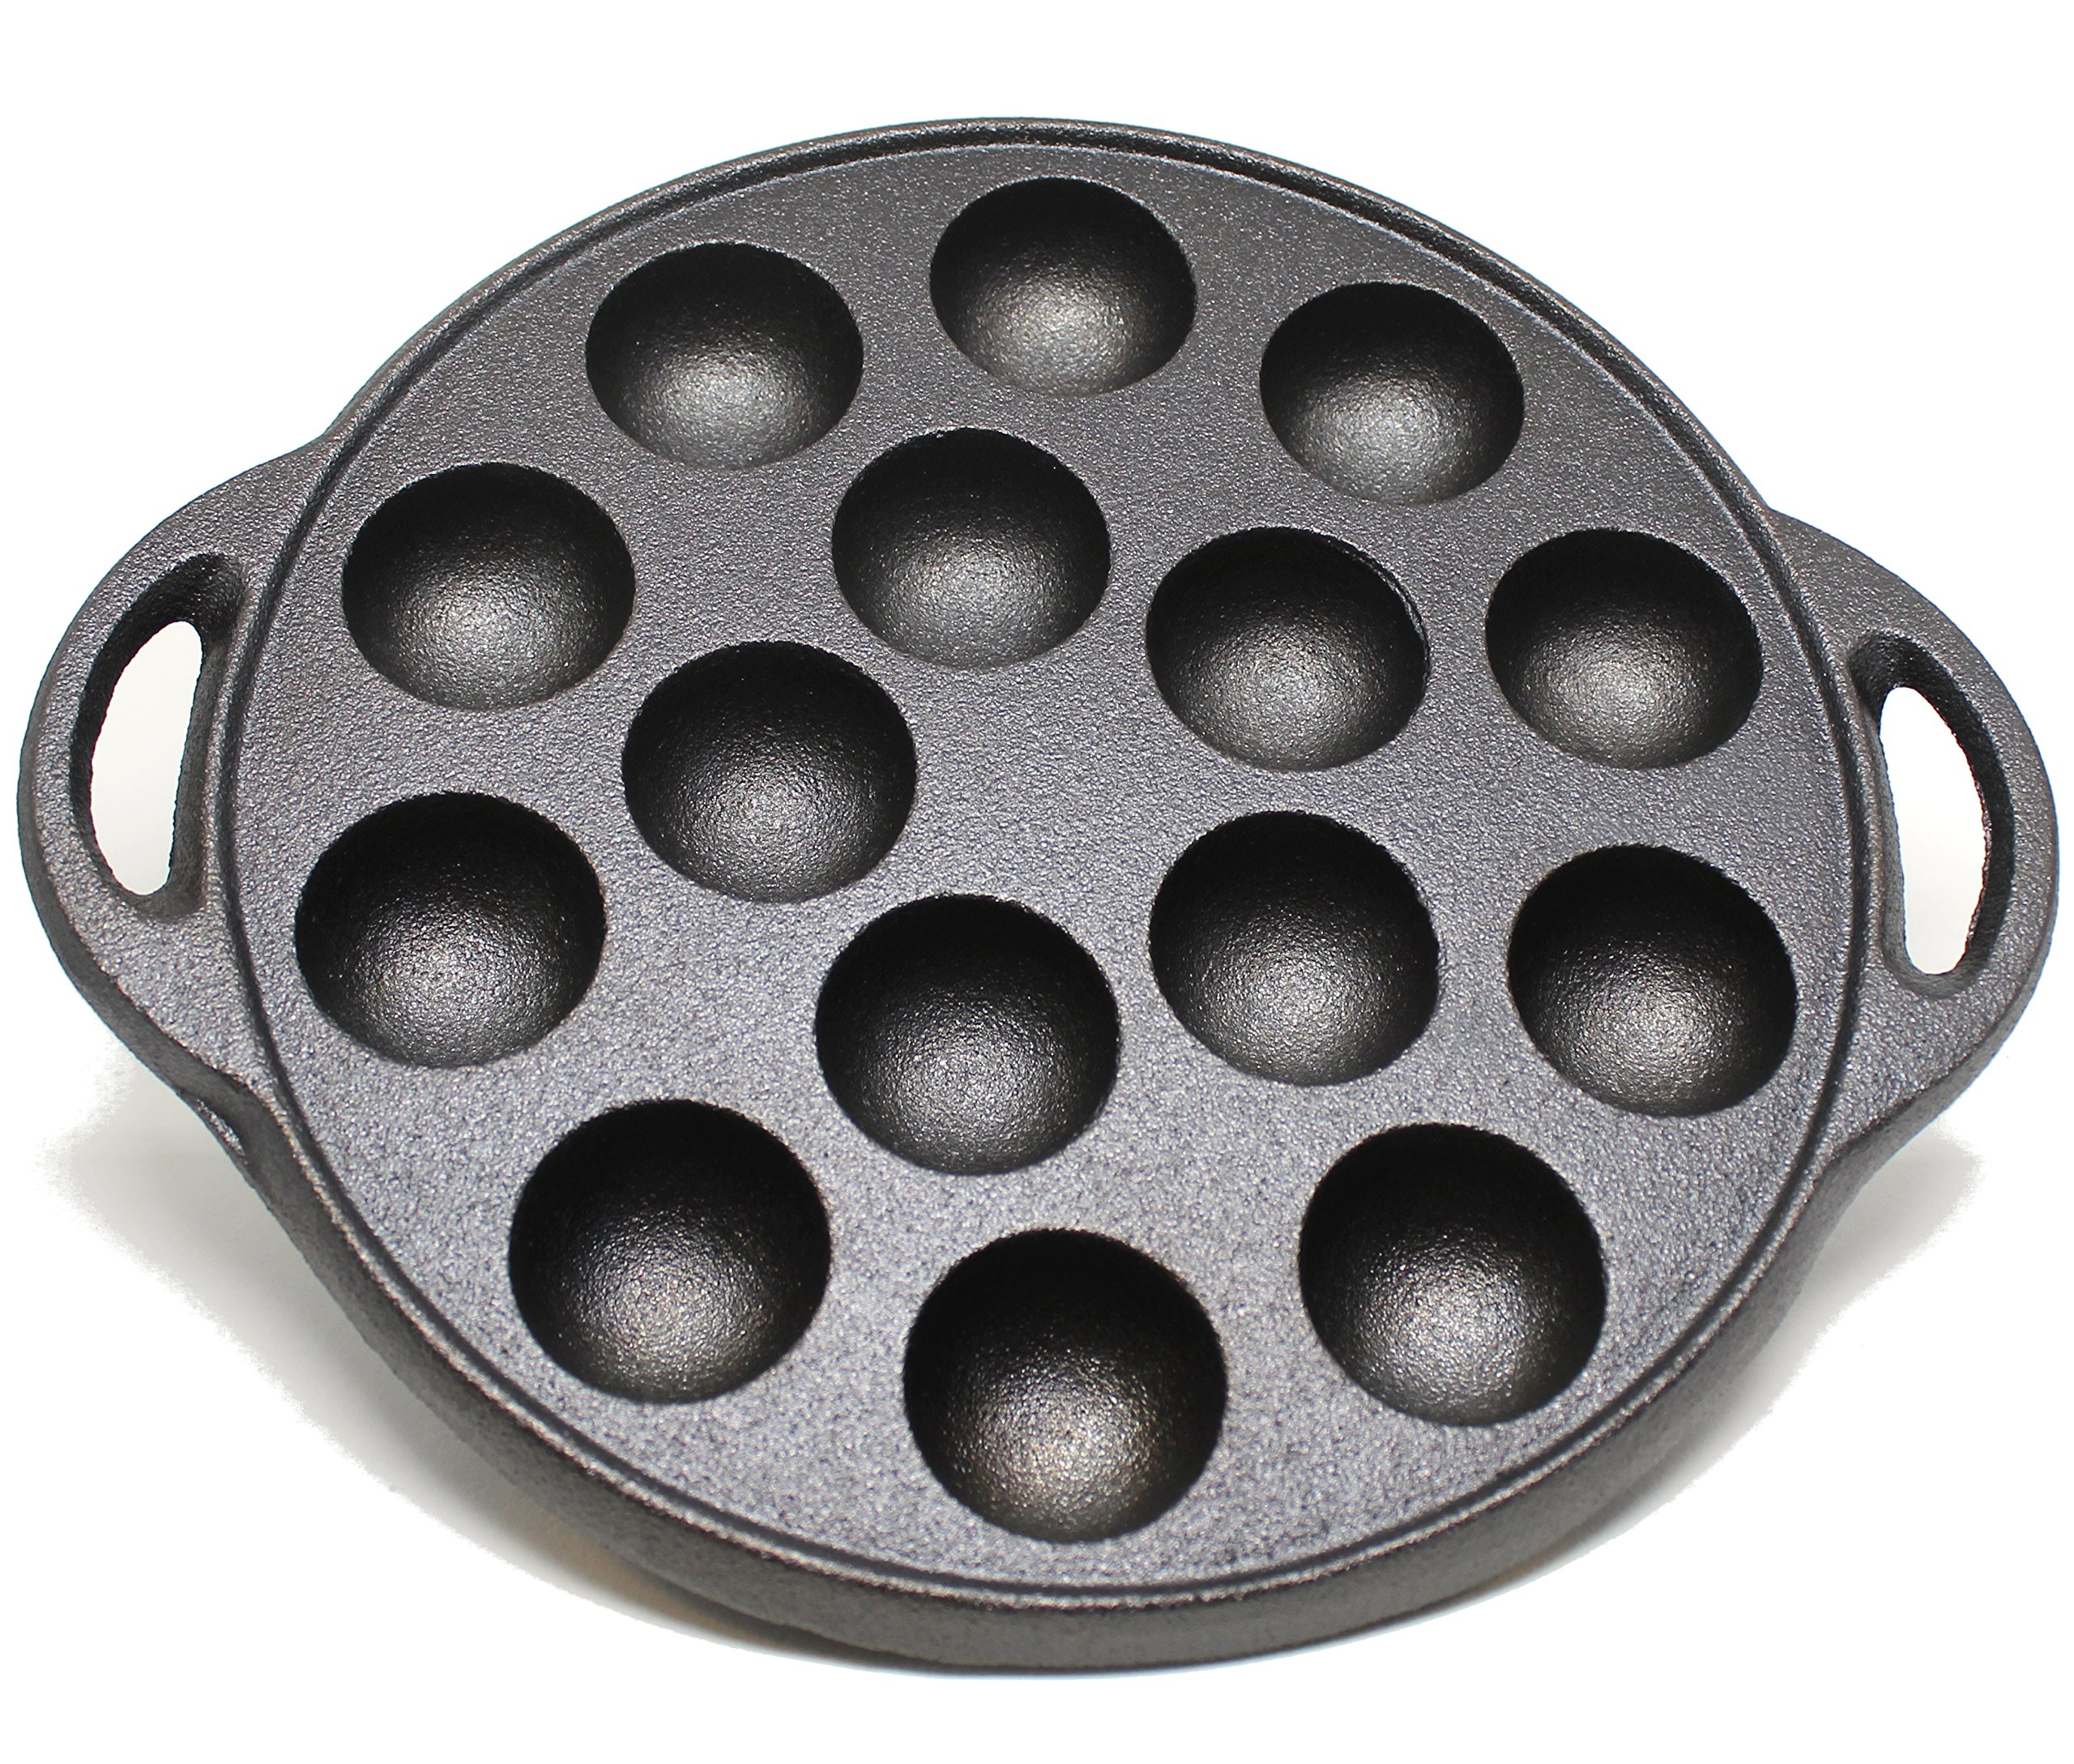 Kasian House Cast Iron Griddle for Making Poffertjes Pancake Balls, Takoyaki, and Thai Kanom Krok and Other Desserts, 1.5'' Dia Half Sphere Molds, Preseasoned by Kasian House